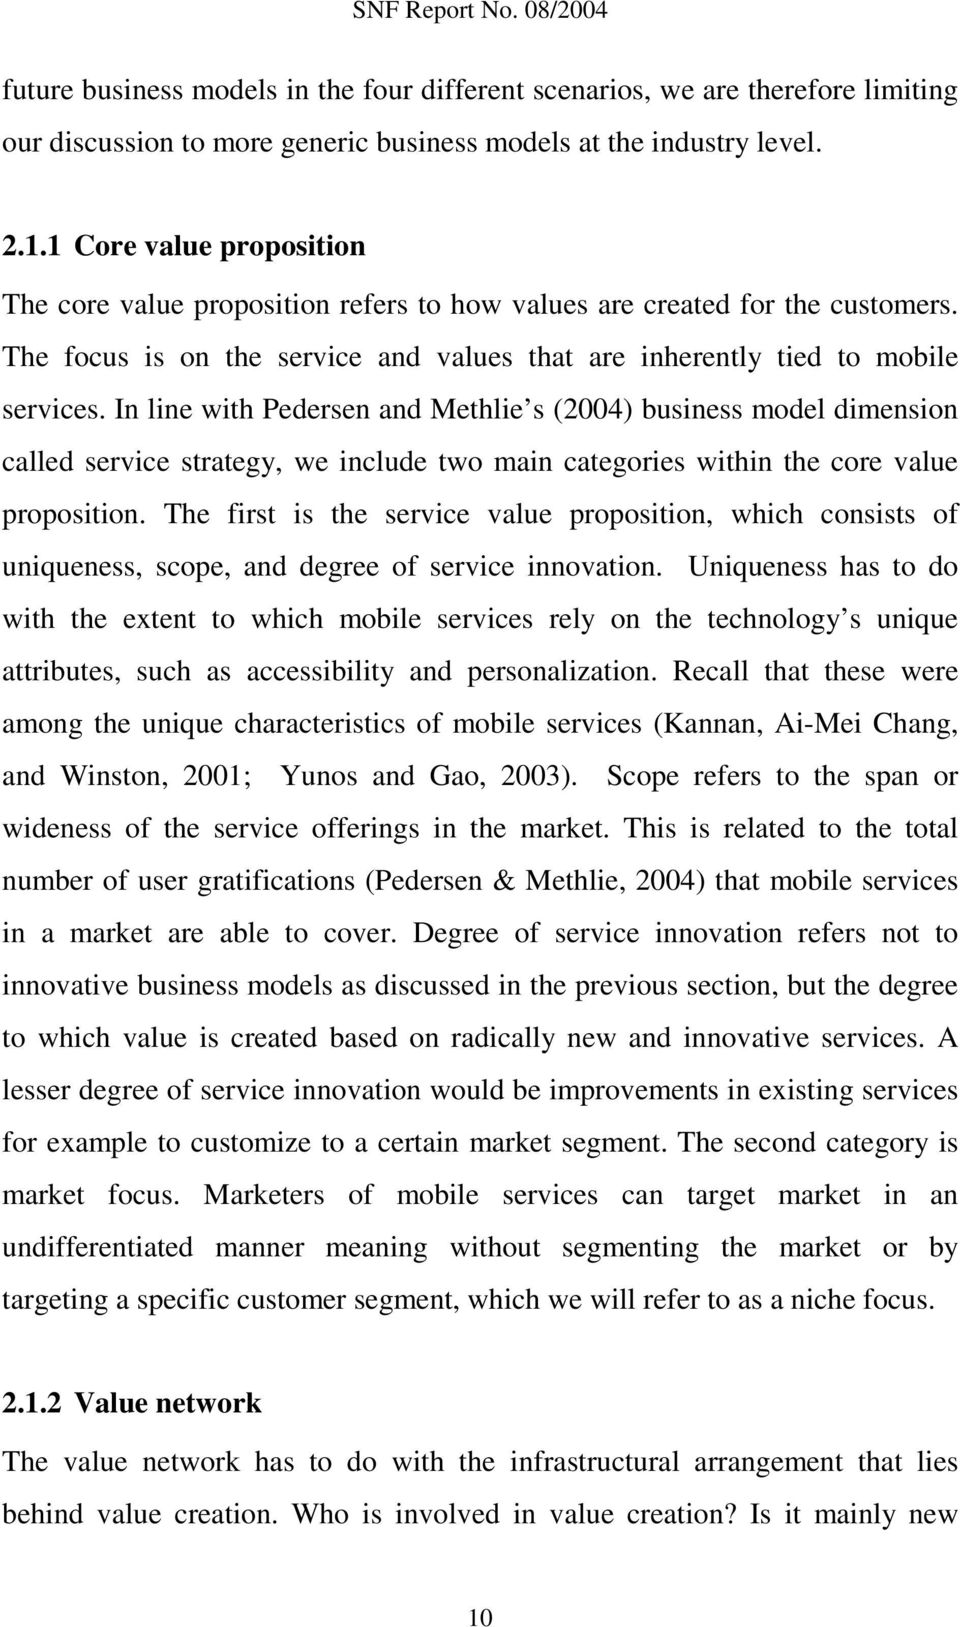 In line with Pedersen and Methlie s (2004) business model dimension called service strategy, we include two main categories within the core value proposition.